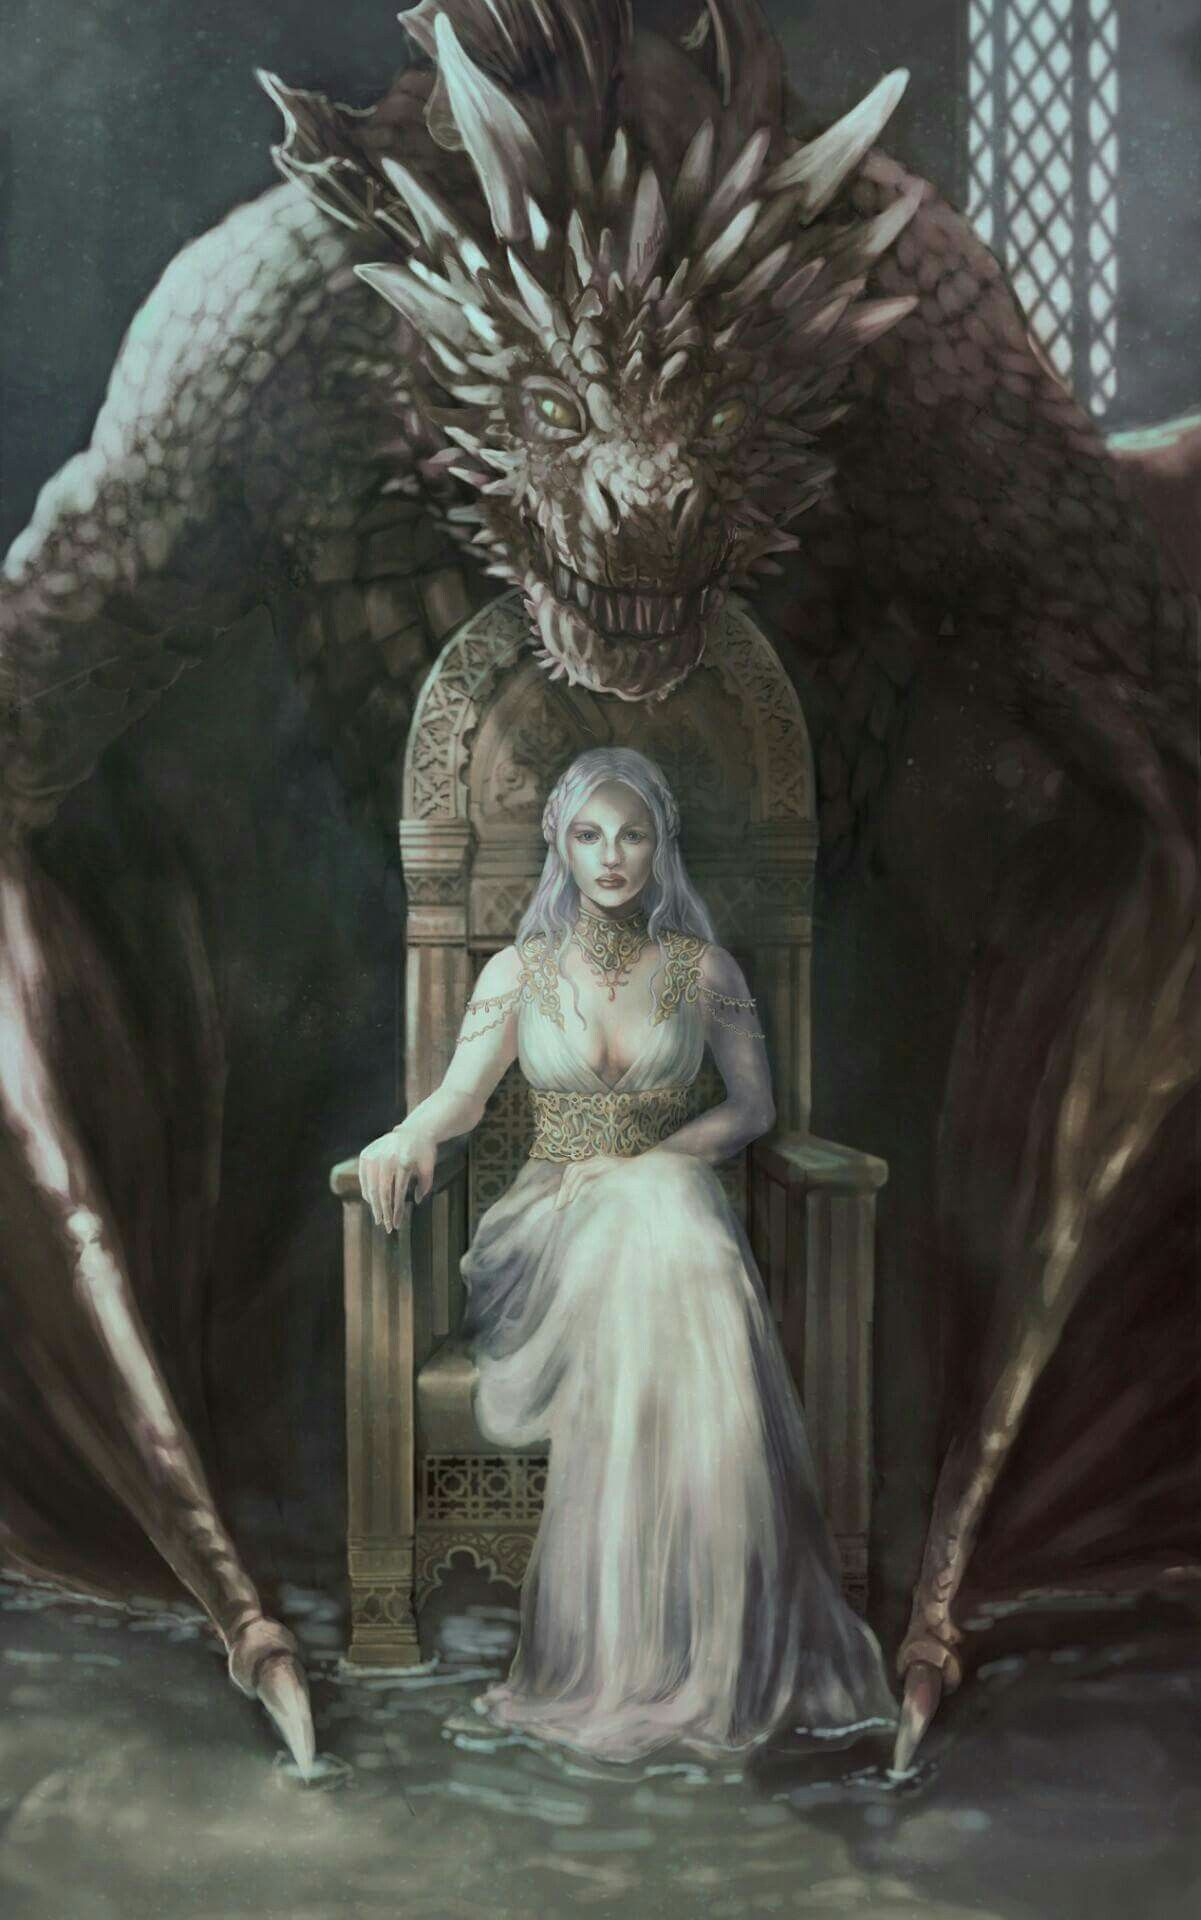 Dragons game of thrones colors - Artsofdaenerys Mother Of Dragons Daenerys Thought Mother Of Monsters What Have I Unleashed Upon The World A Queen I Am But My Throne Is Made Of